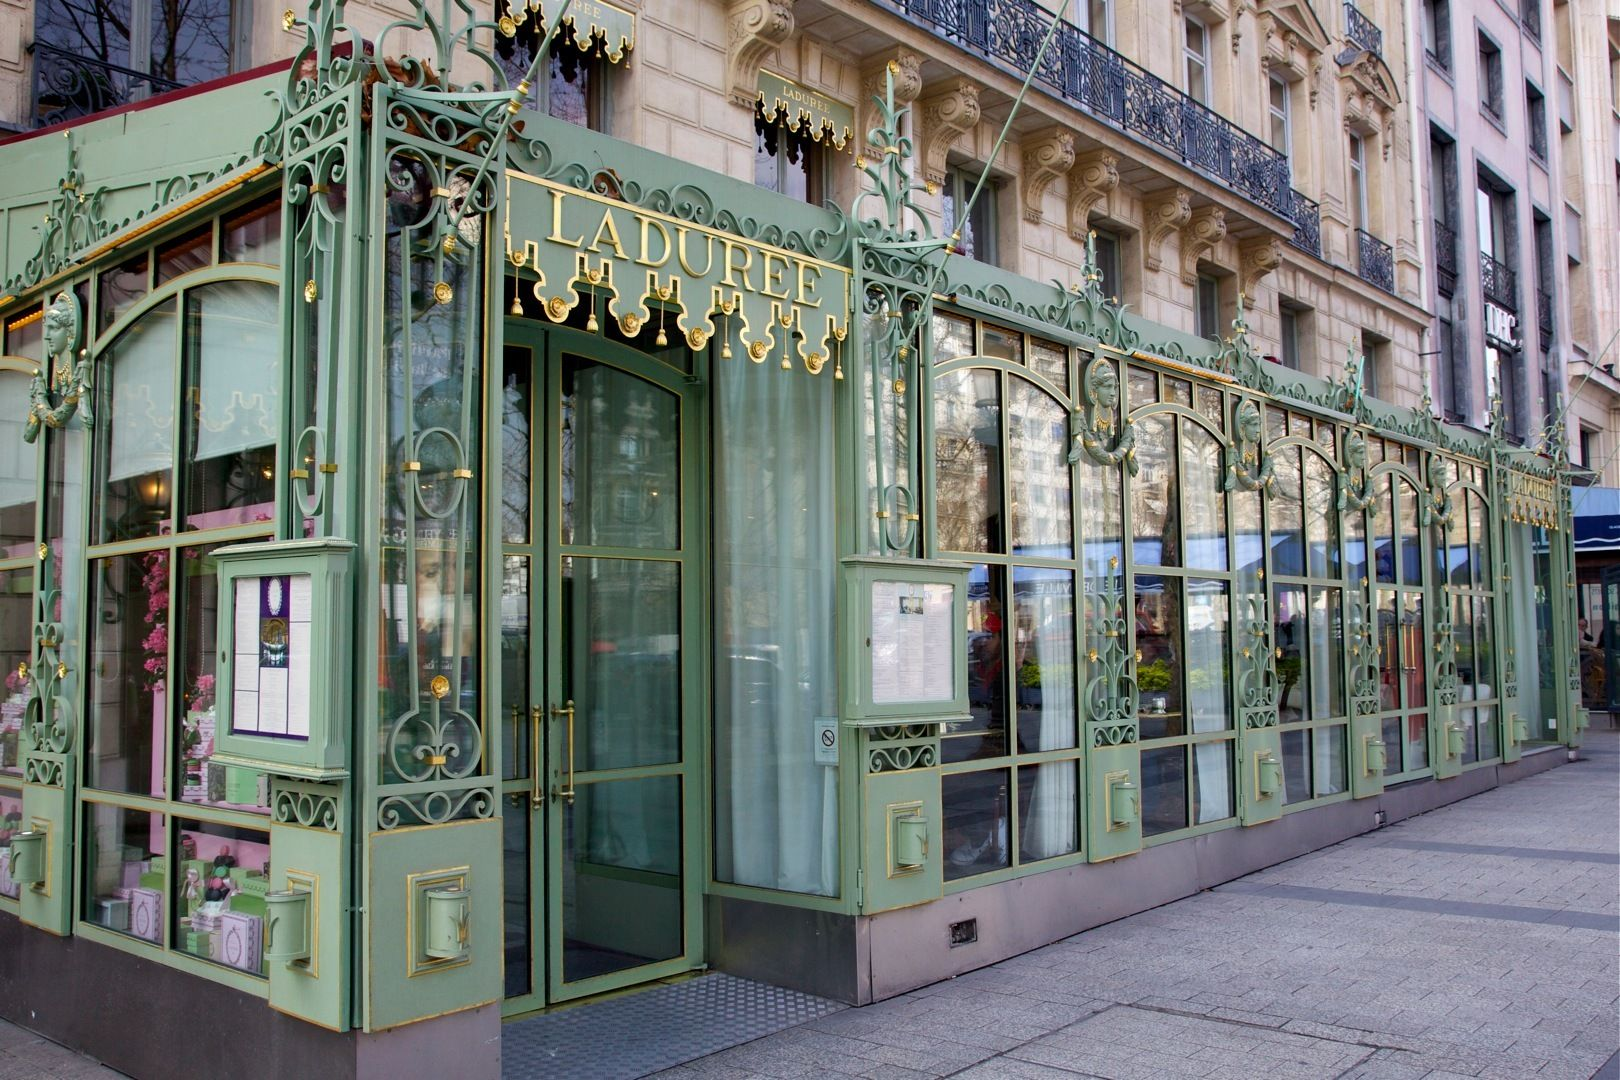 A year after the flagship Laduree boutique along Paris's famed Champs-Elysées went up in smoke, the luxury tea house has reopened for business. Description from crownlifemagazine.com. I searched for this on bing.com/images